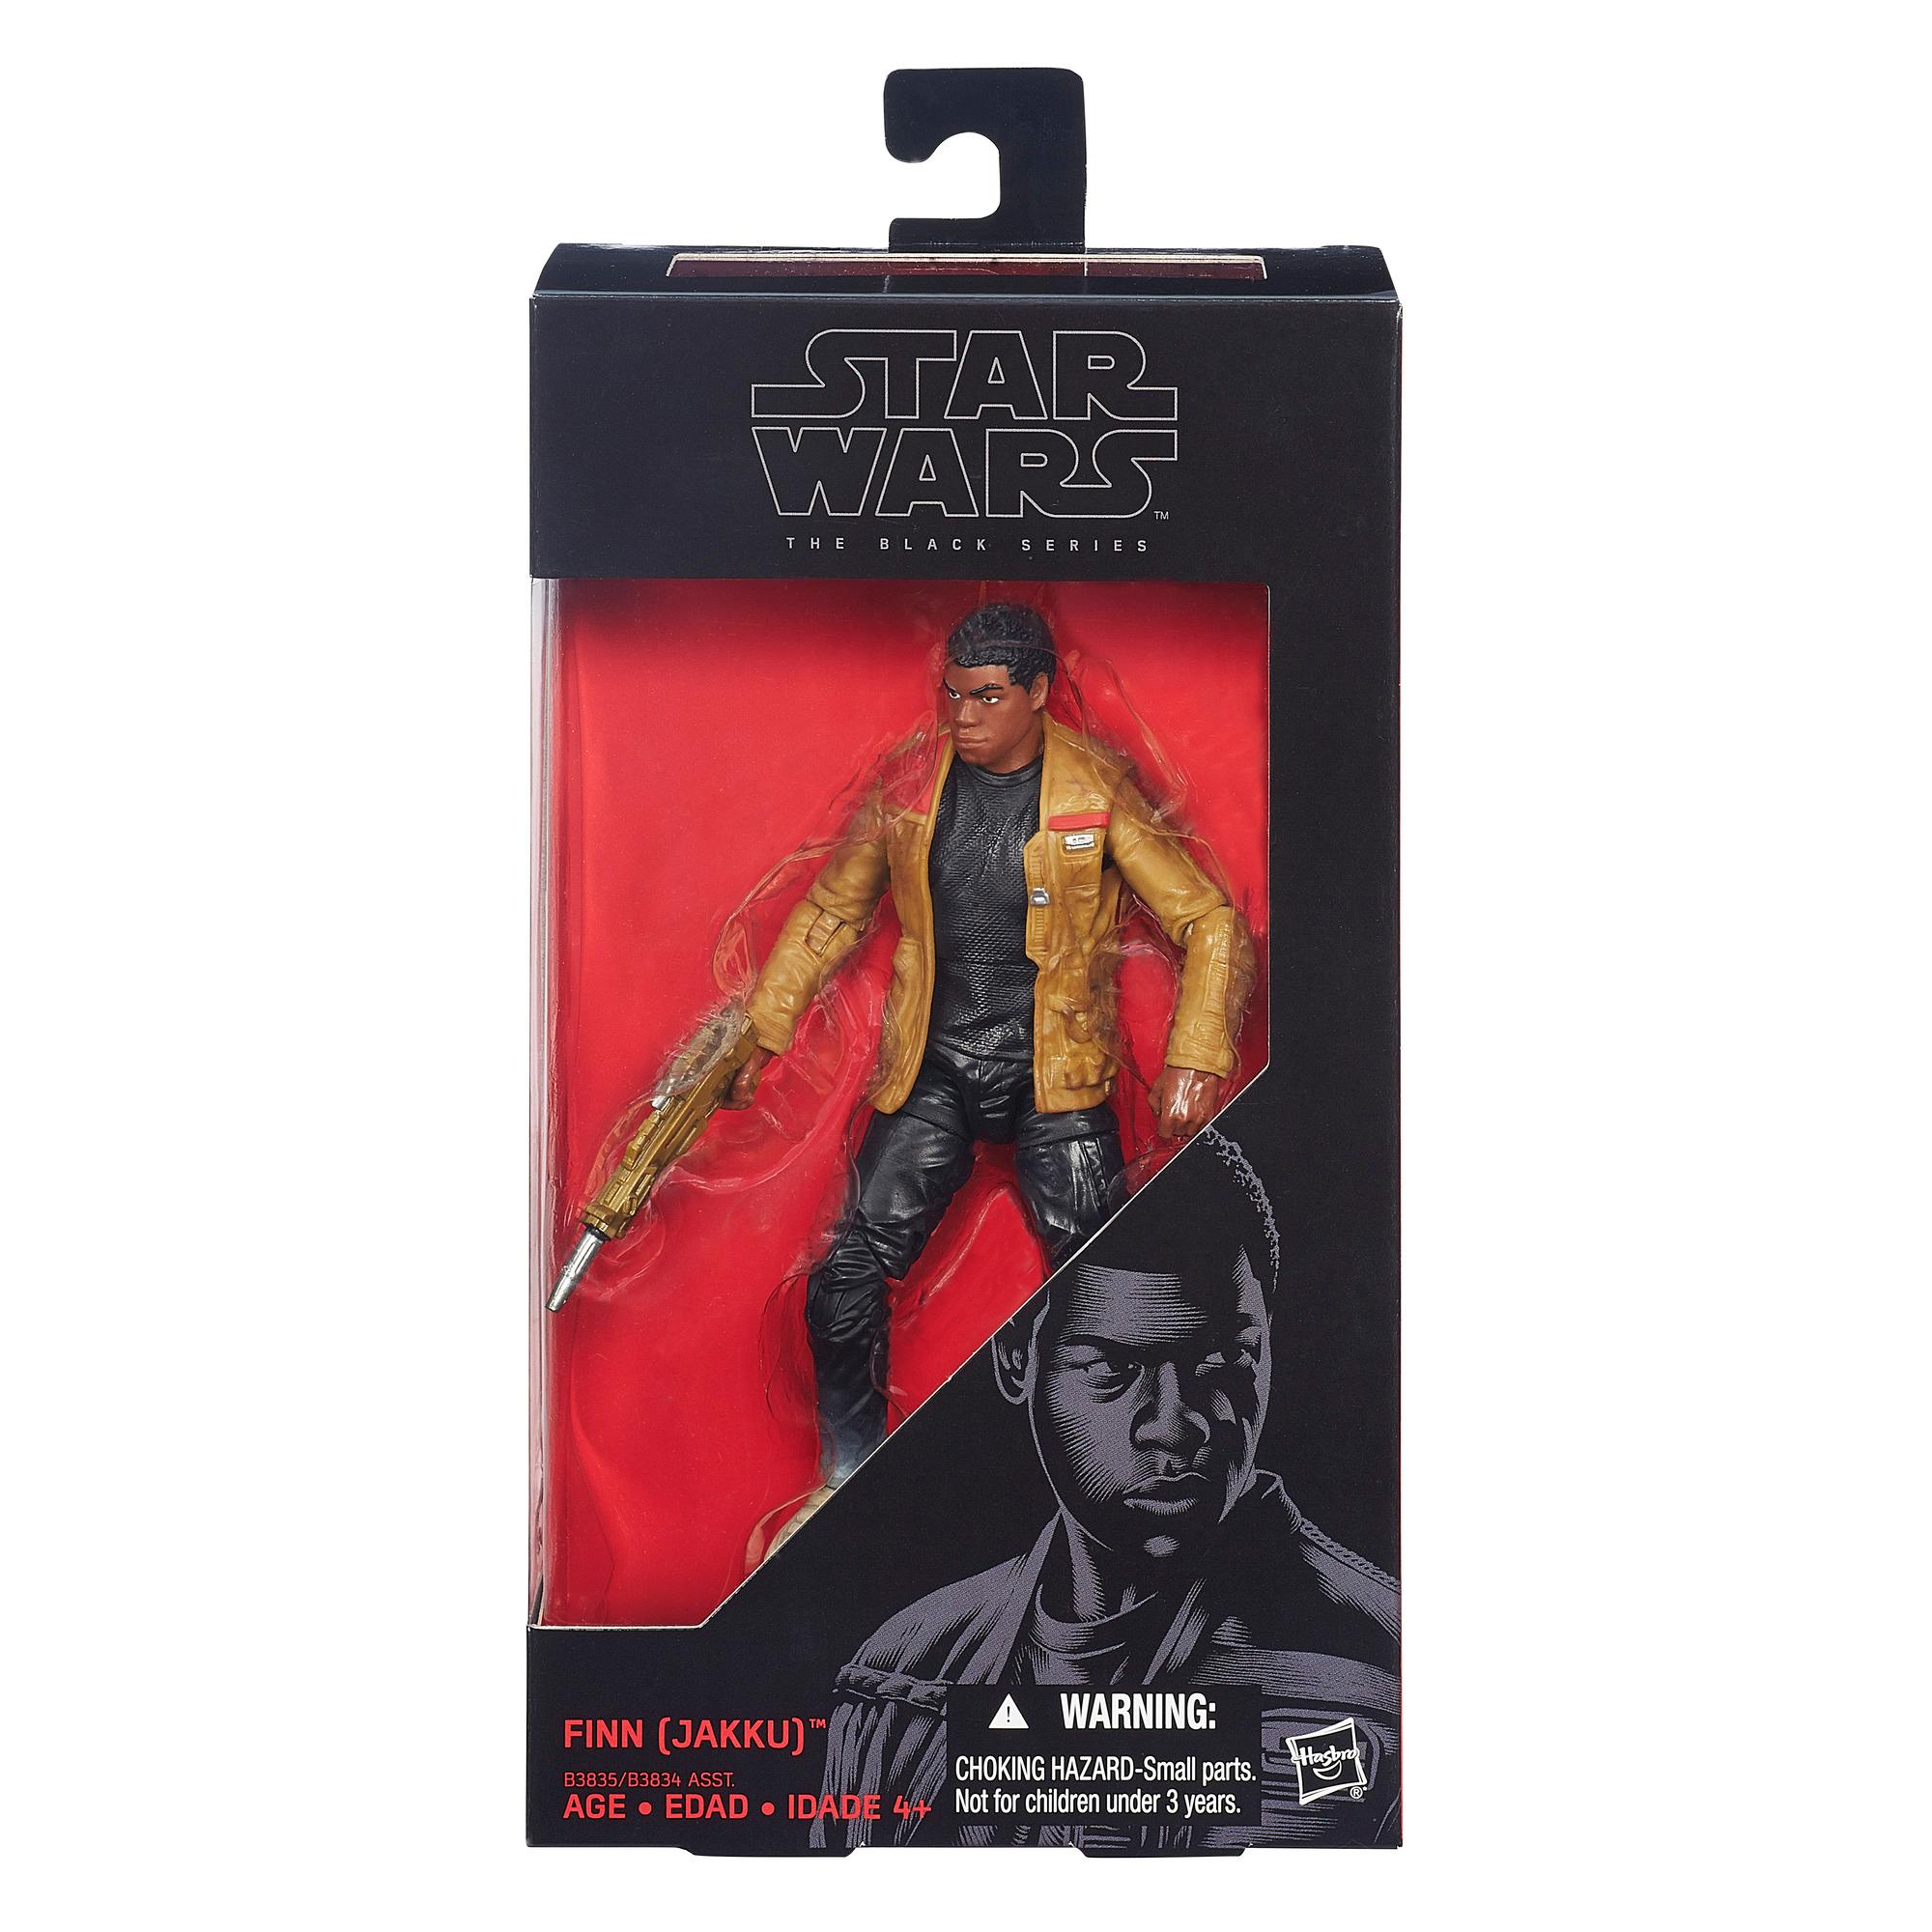 Star Wars - Finn de 15,25 cm (Jakku) Black Series